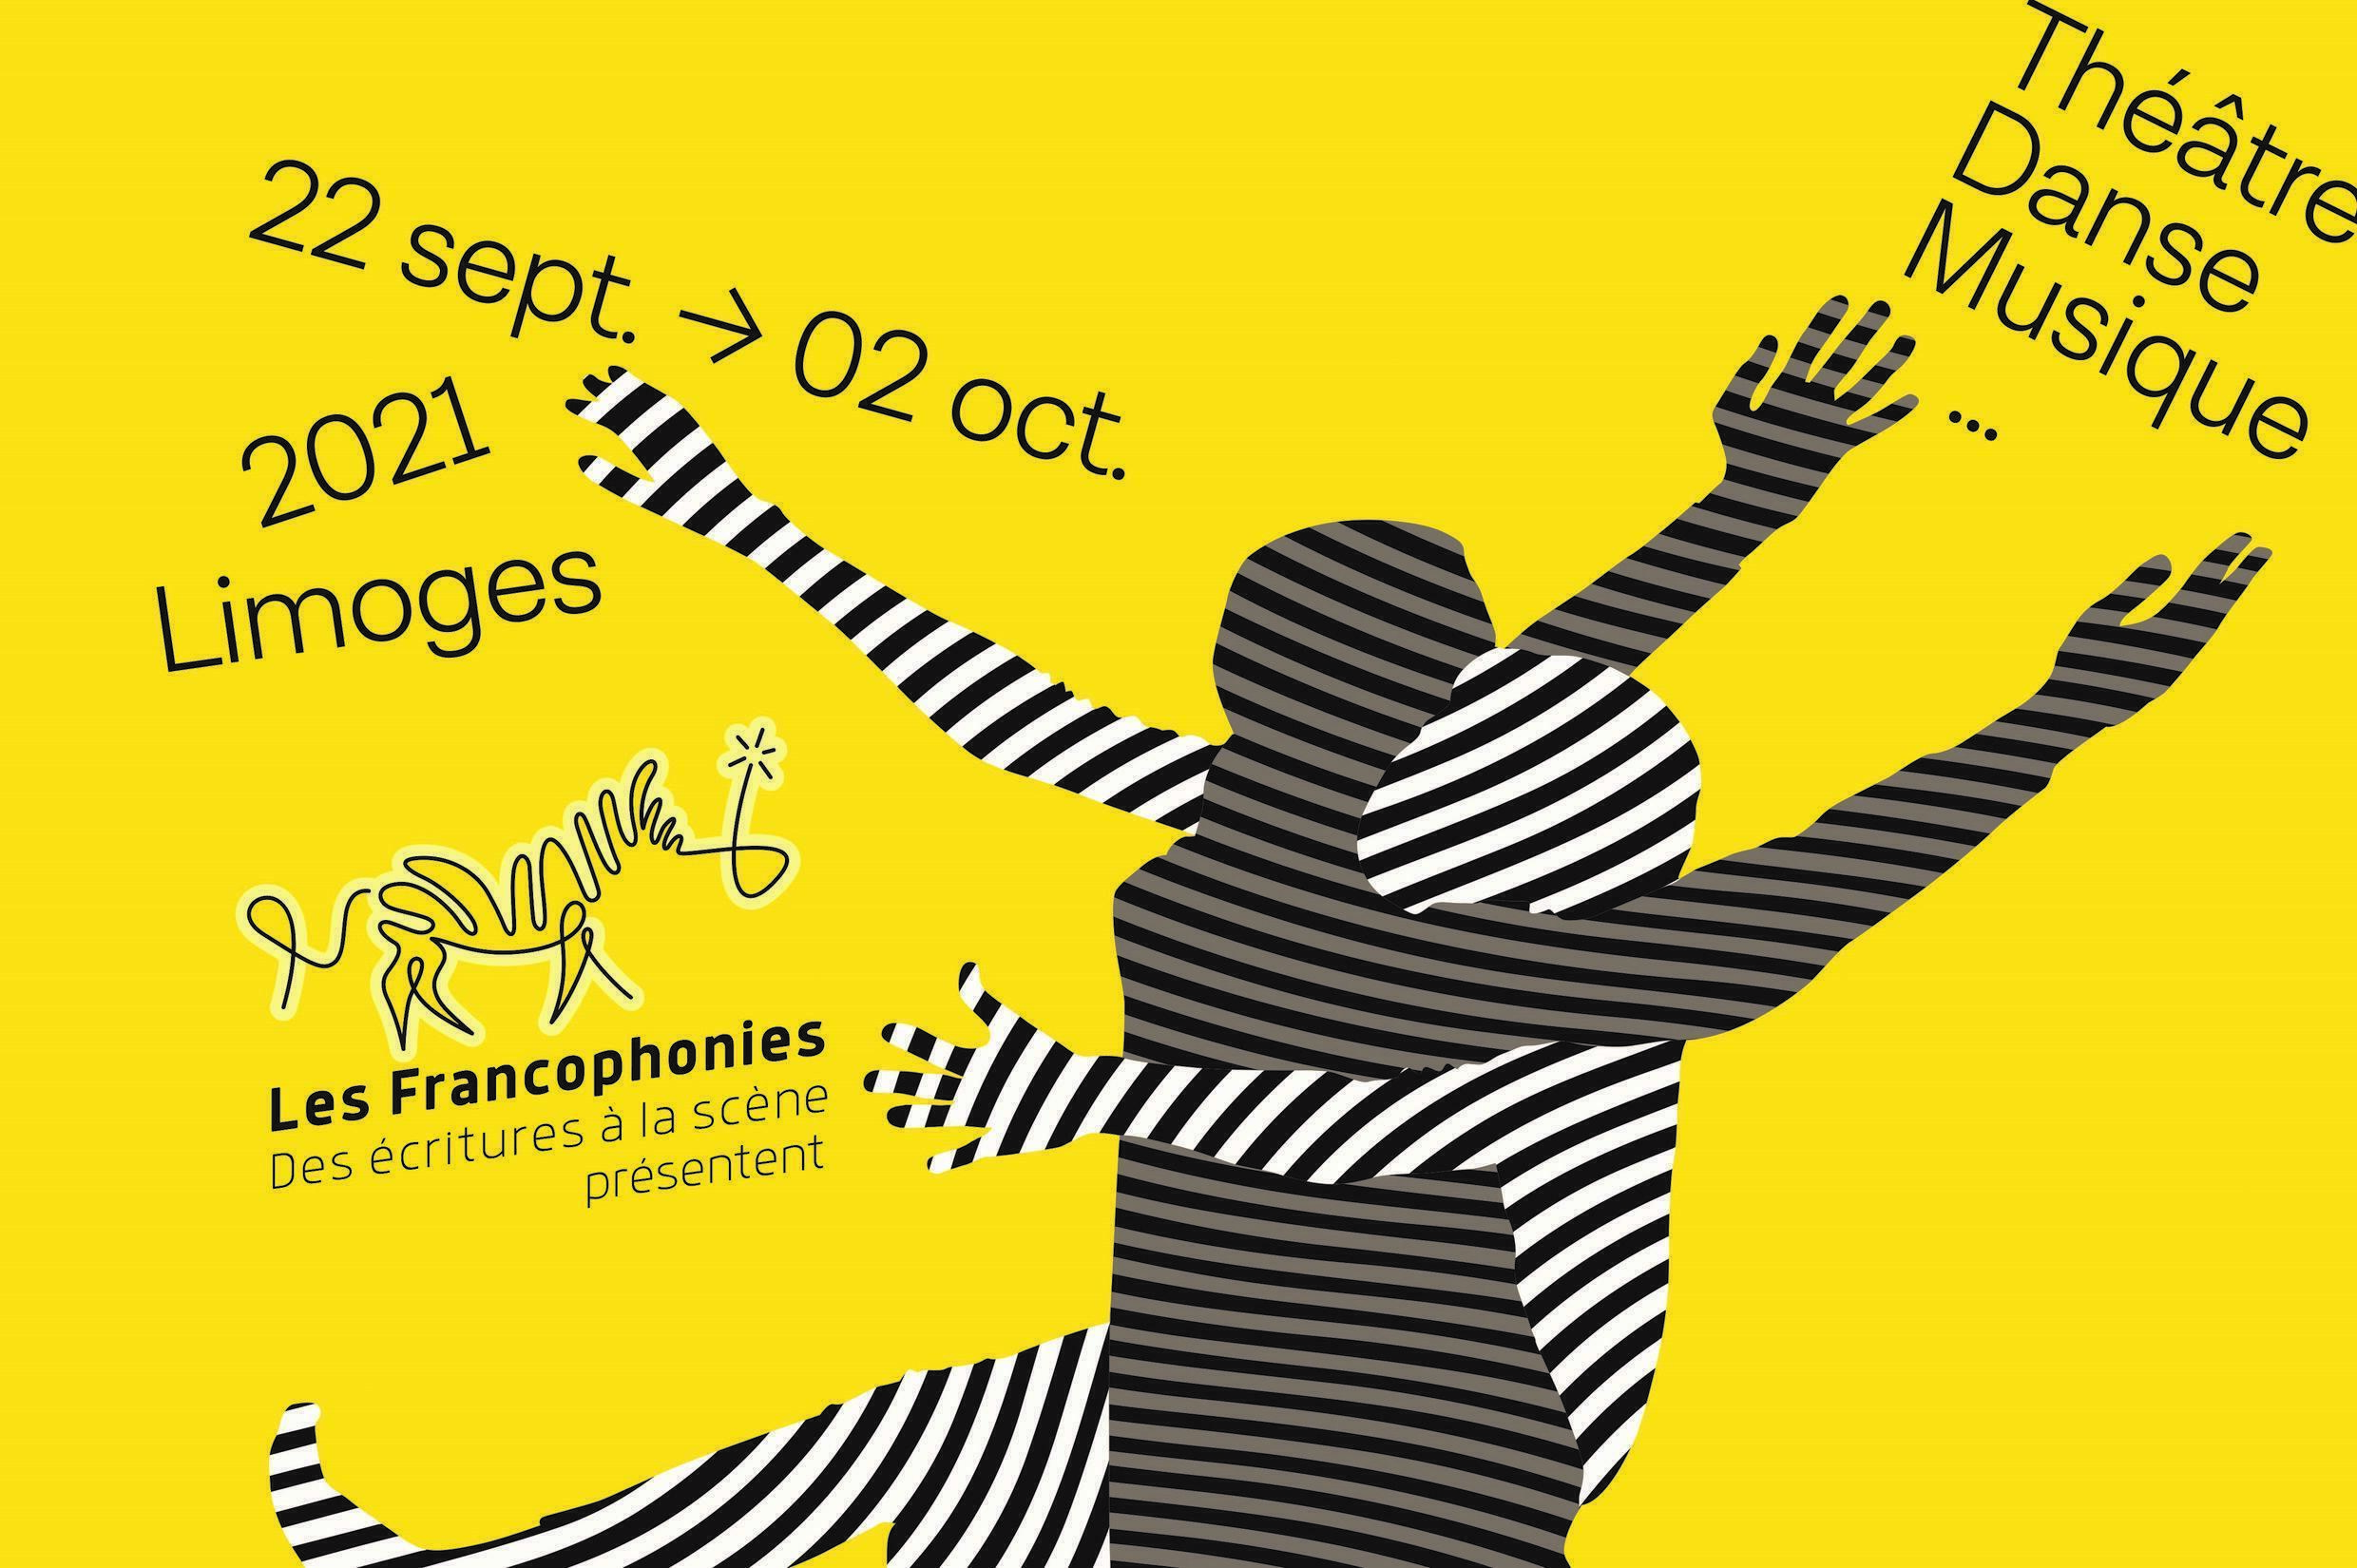 Detail of the poster for the 2021 edition of the Zébrures d'Automne des Francophonies, writings on the stage, in Limoges.